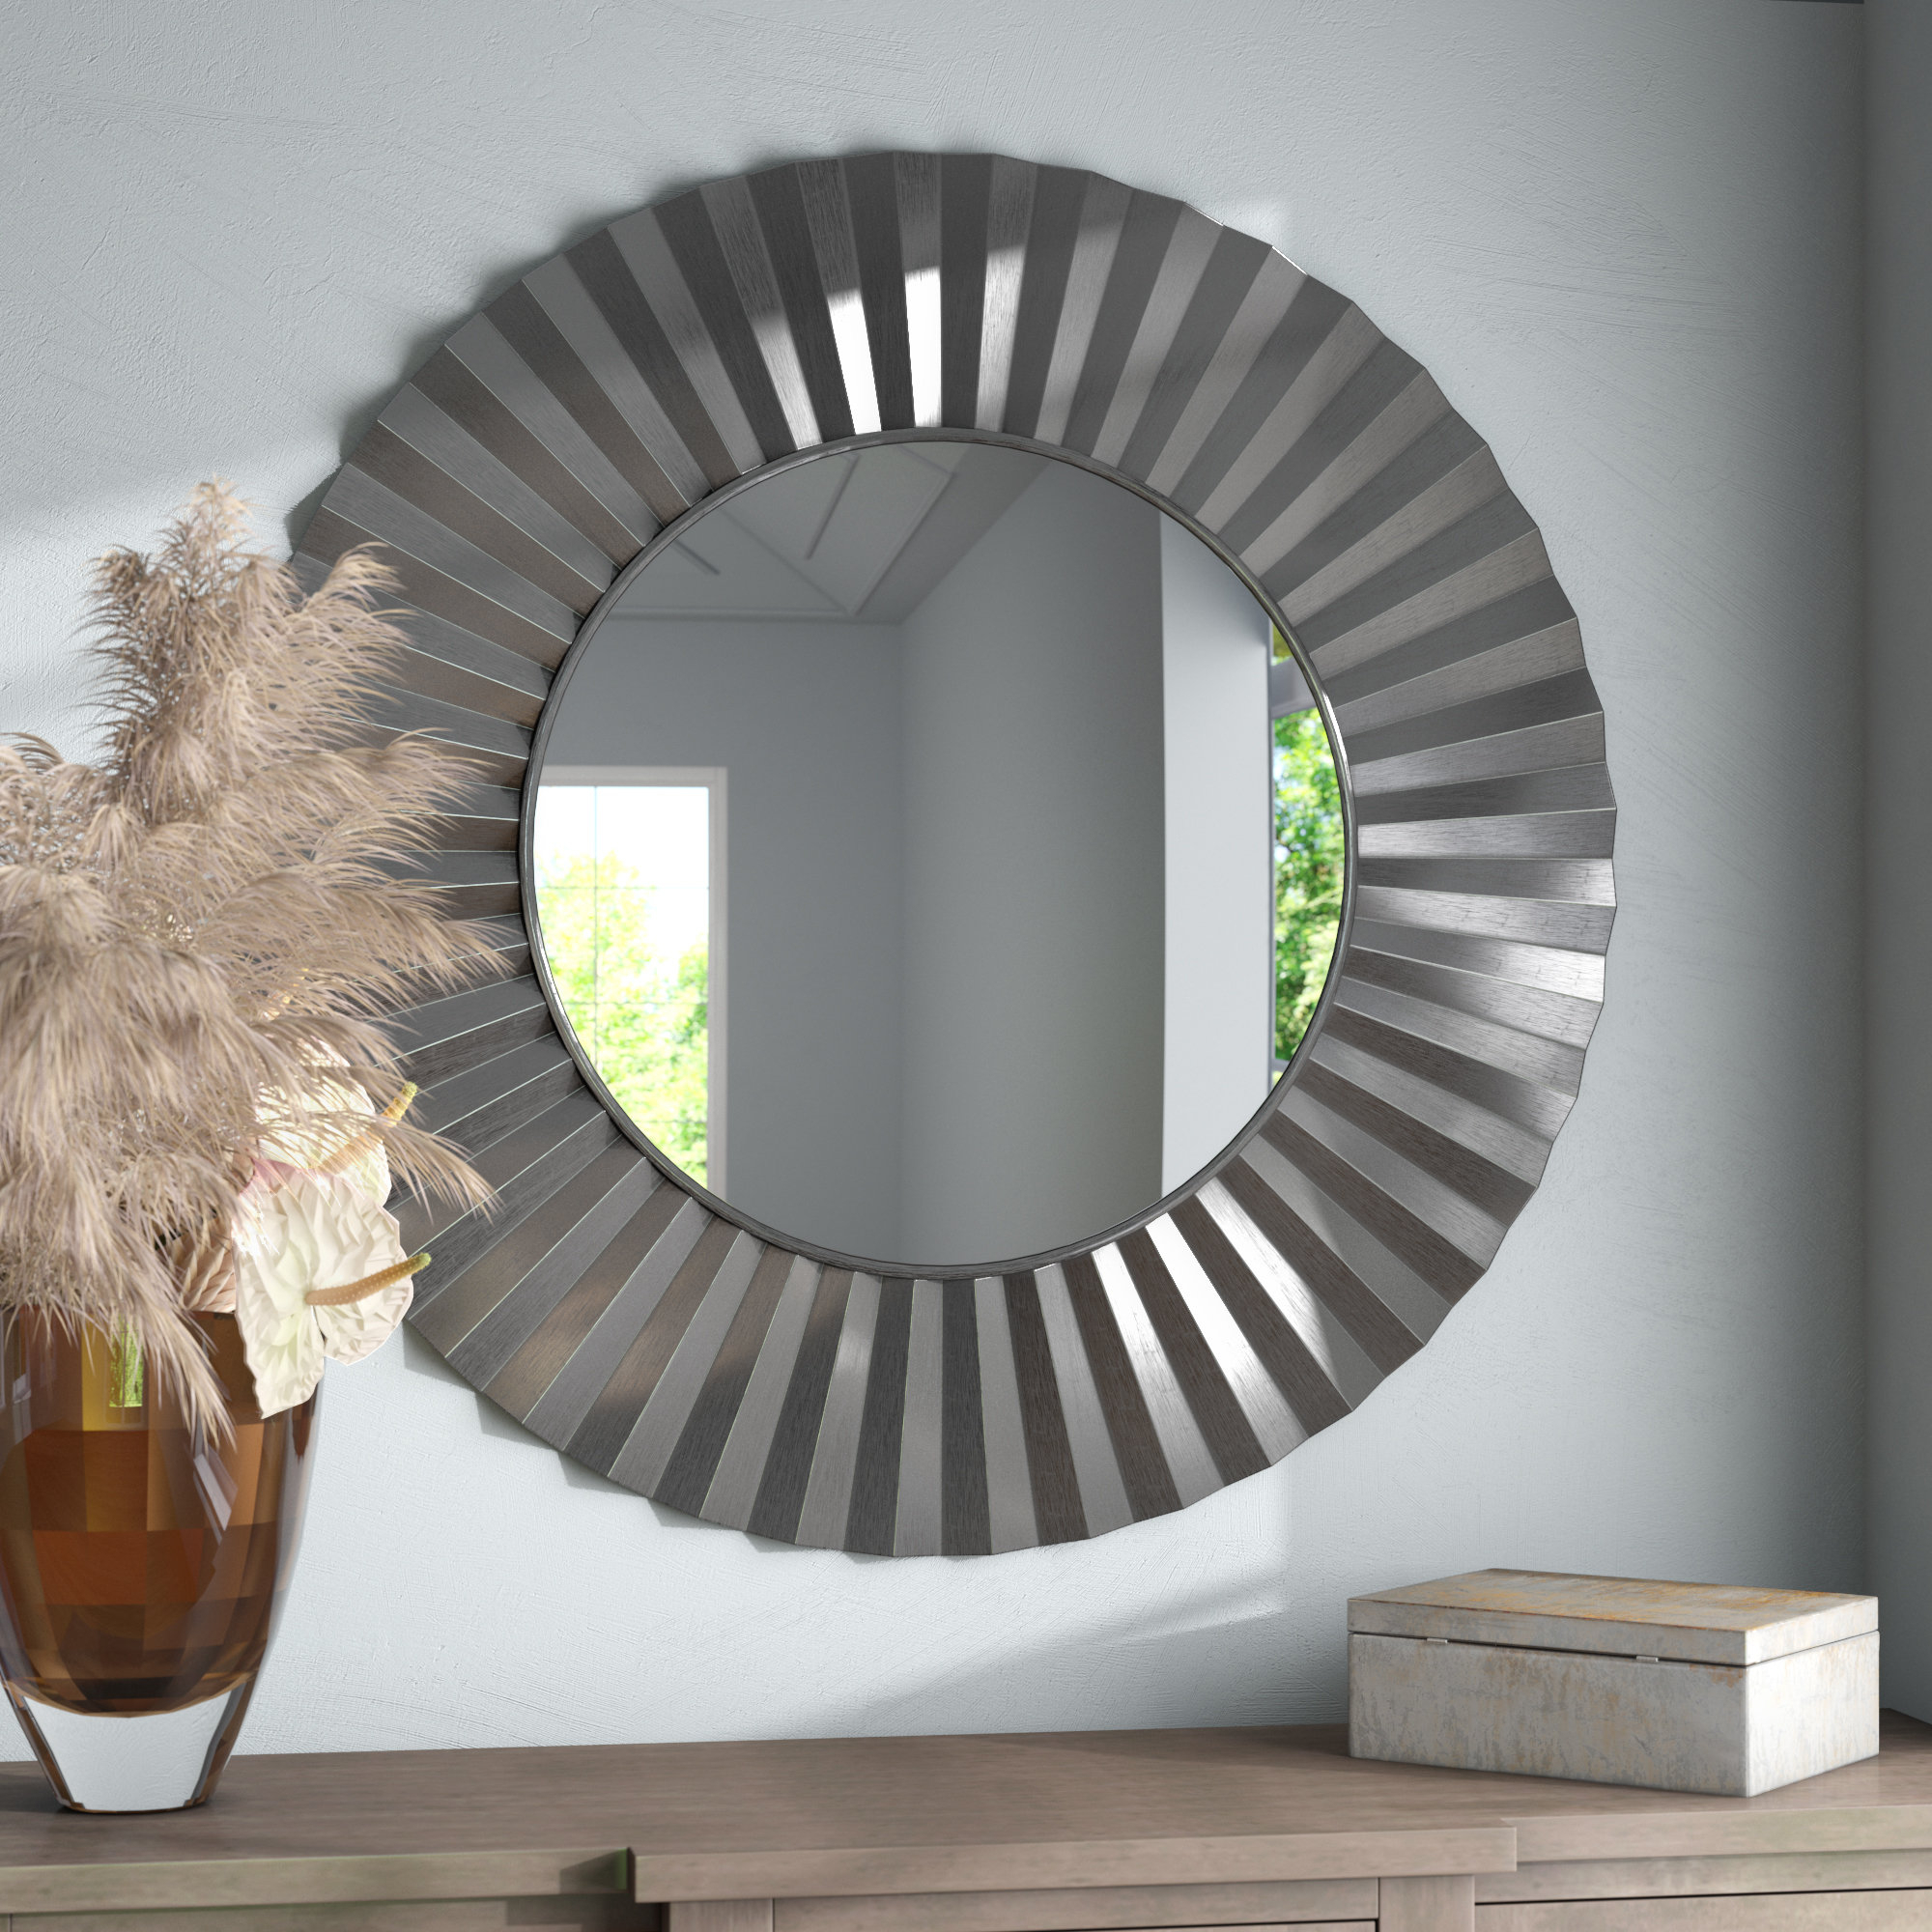 Wayfair Within Well Known Starburst Wall Decor By Willa Arlo Interiors (View 18 of 20)